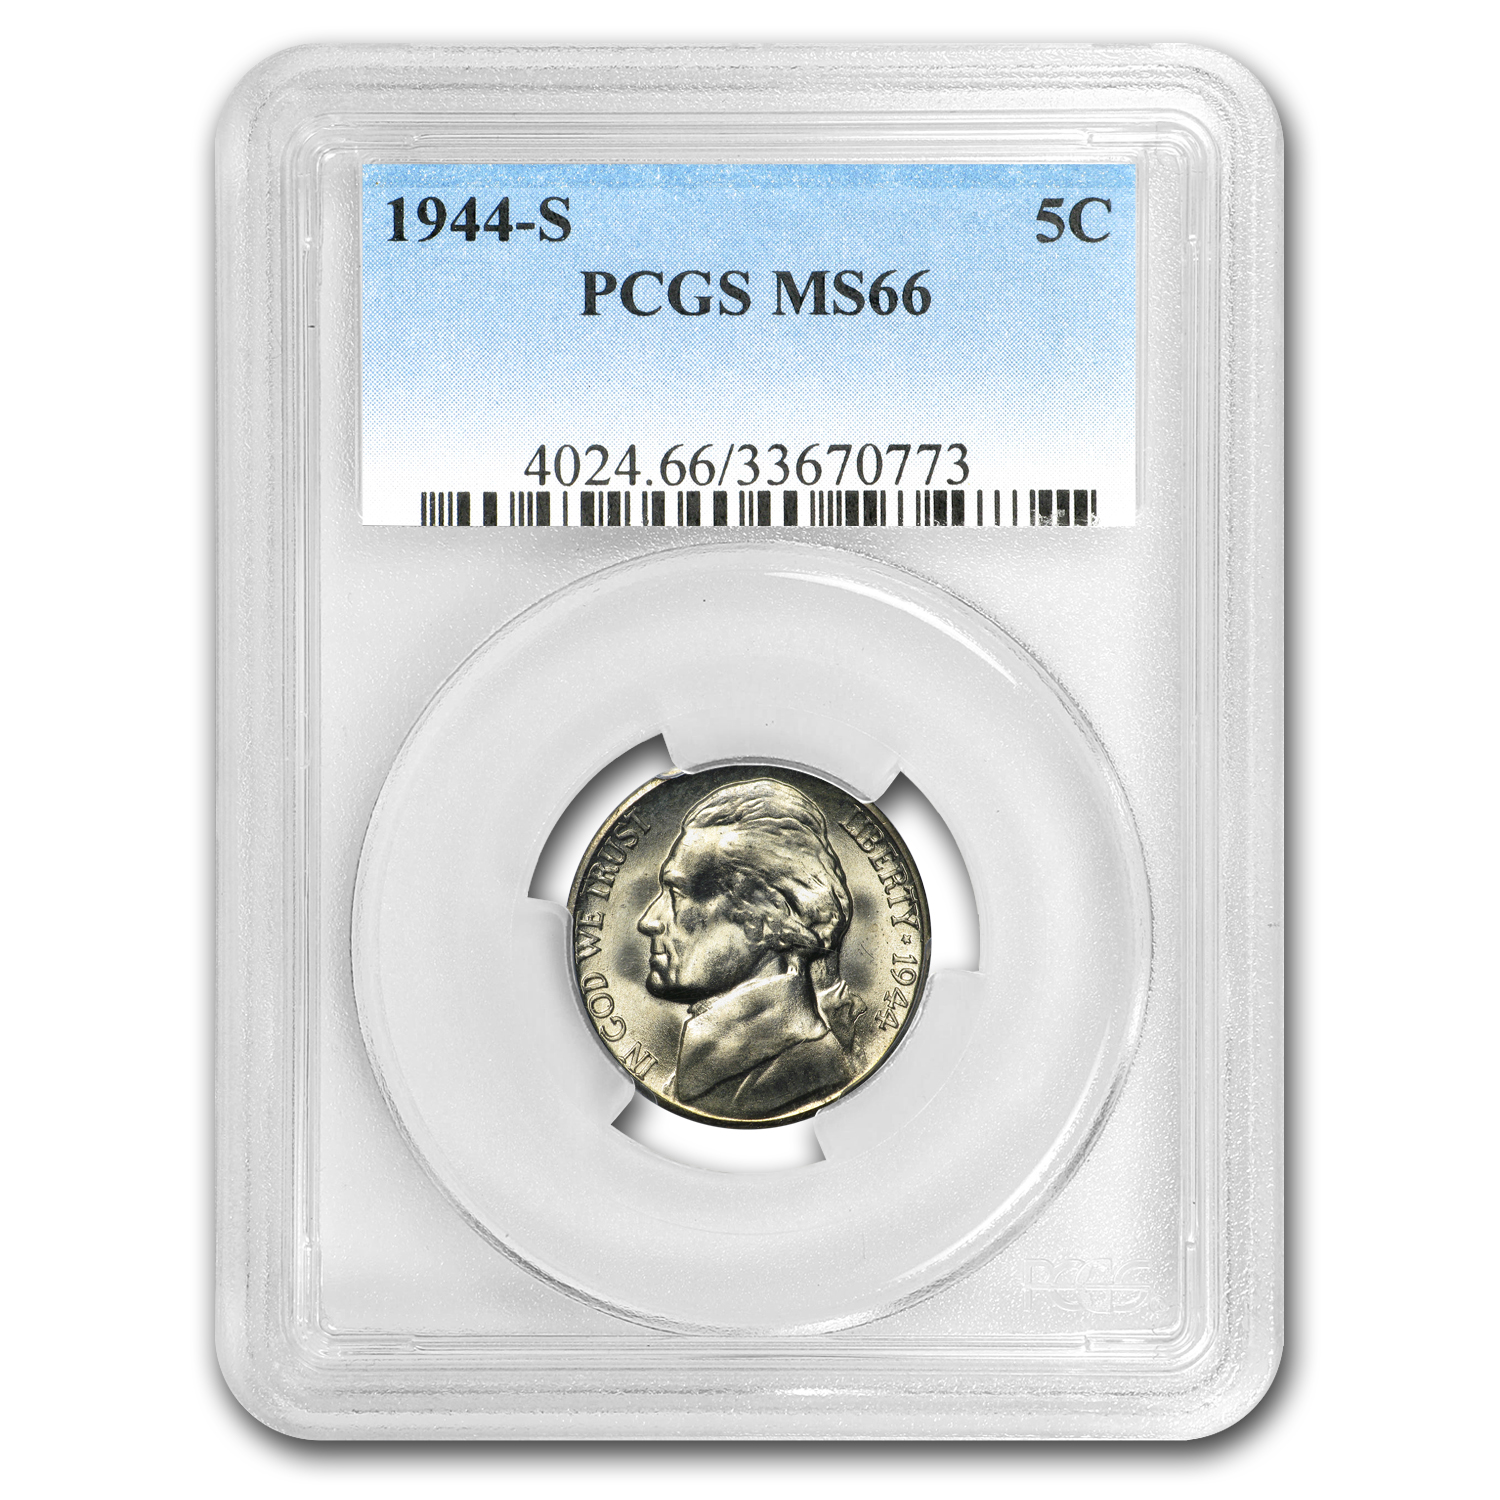 1944-S Jefferson Nickel MS-66 PCGS